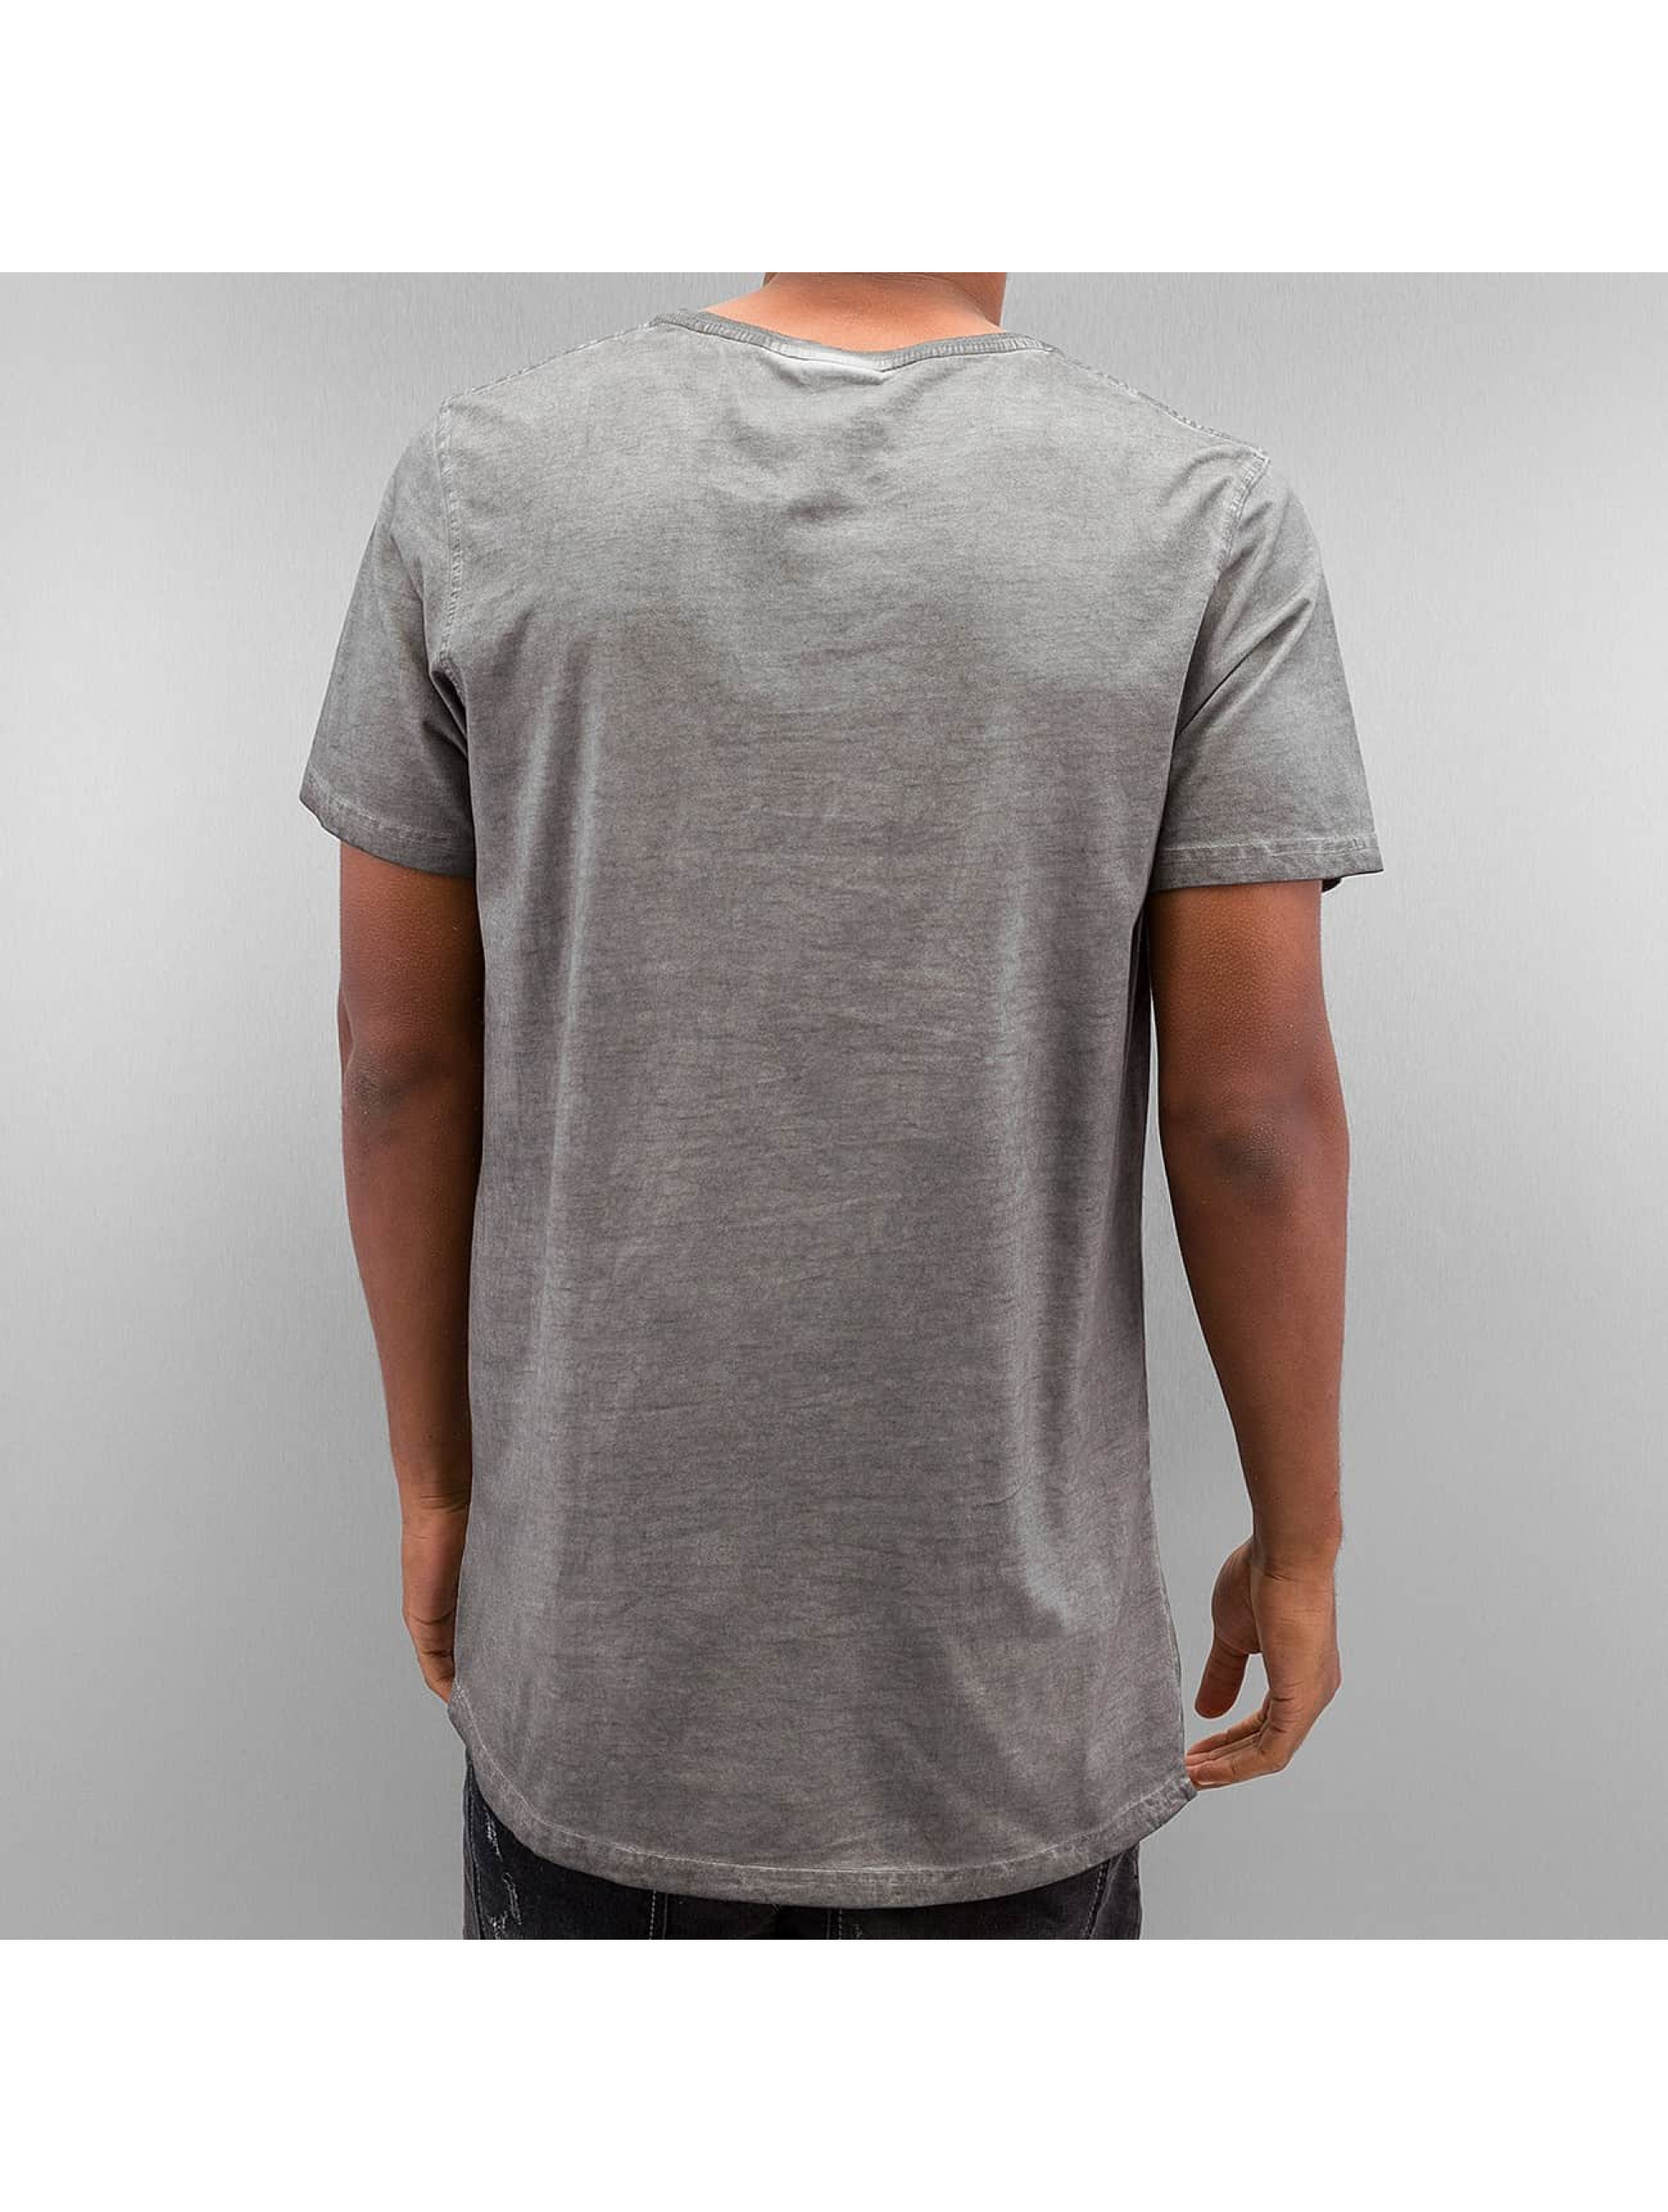 Urban Classics t-shirt Shaped Long Cold Dye grijs